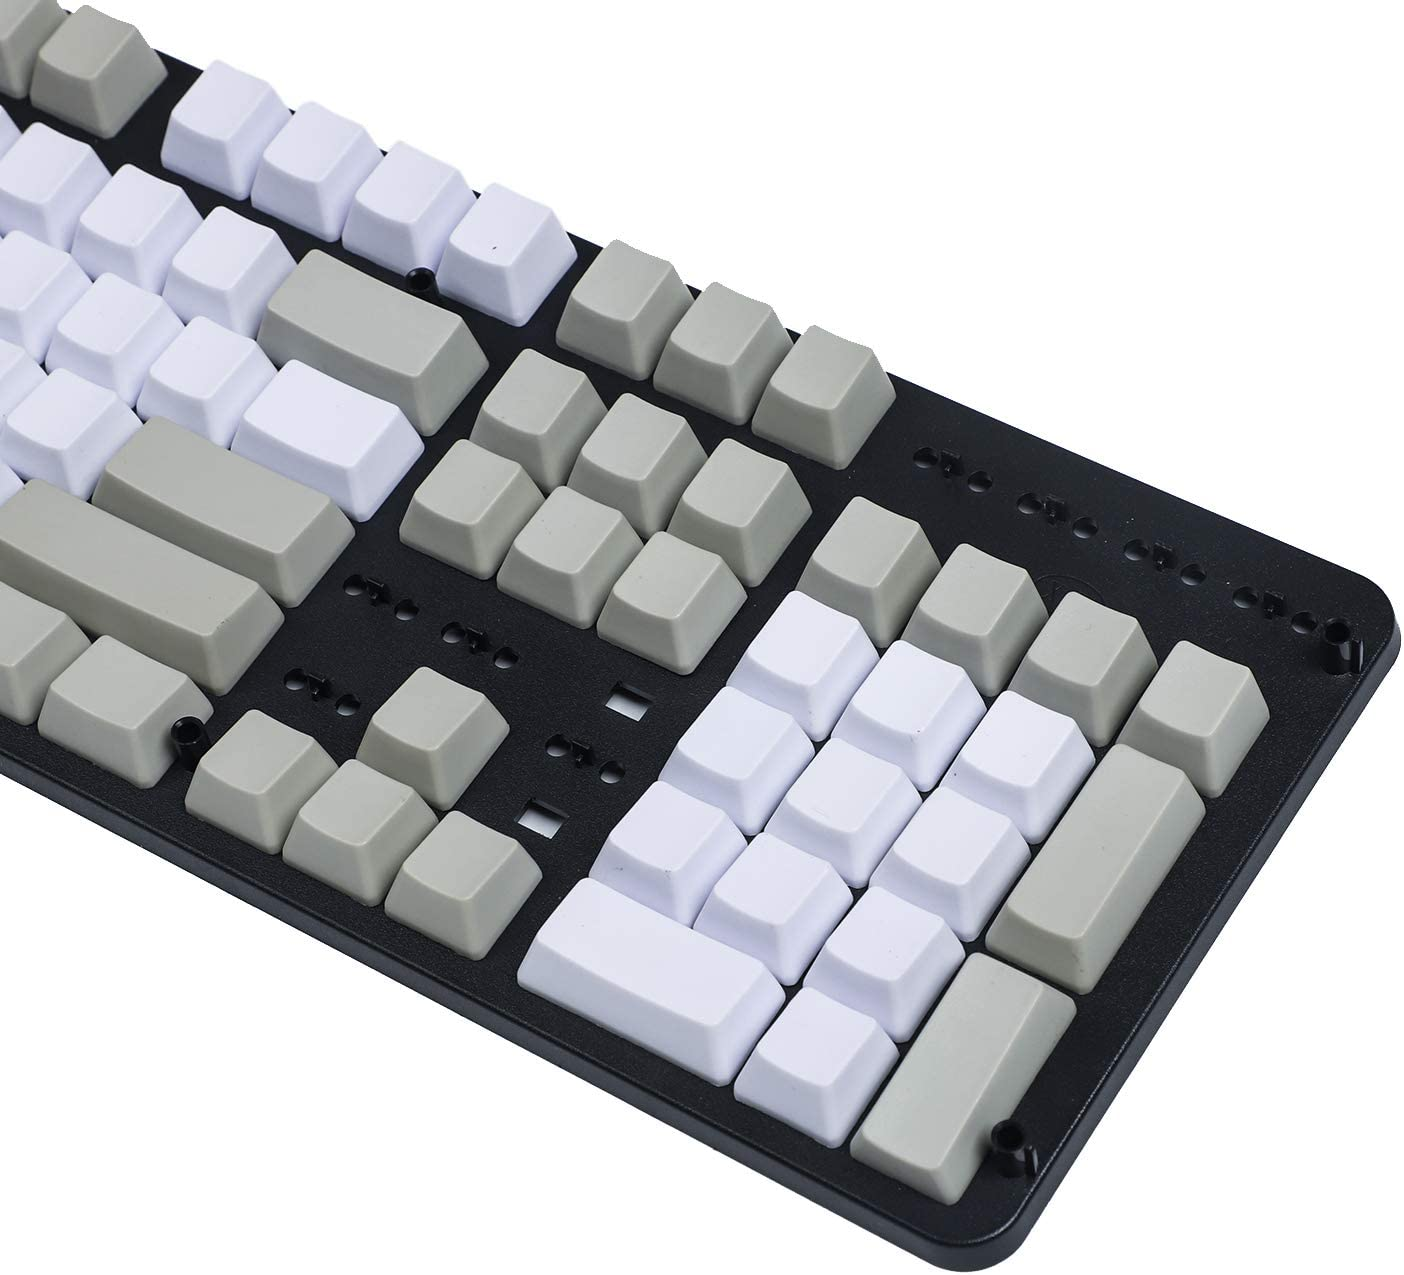 Blank Thick PBT OEM Profile 108 ANSI Keycaps for MX Switches Mechanical Keyboard Pink Only Keycap